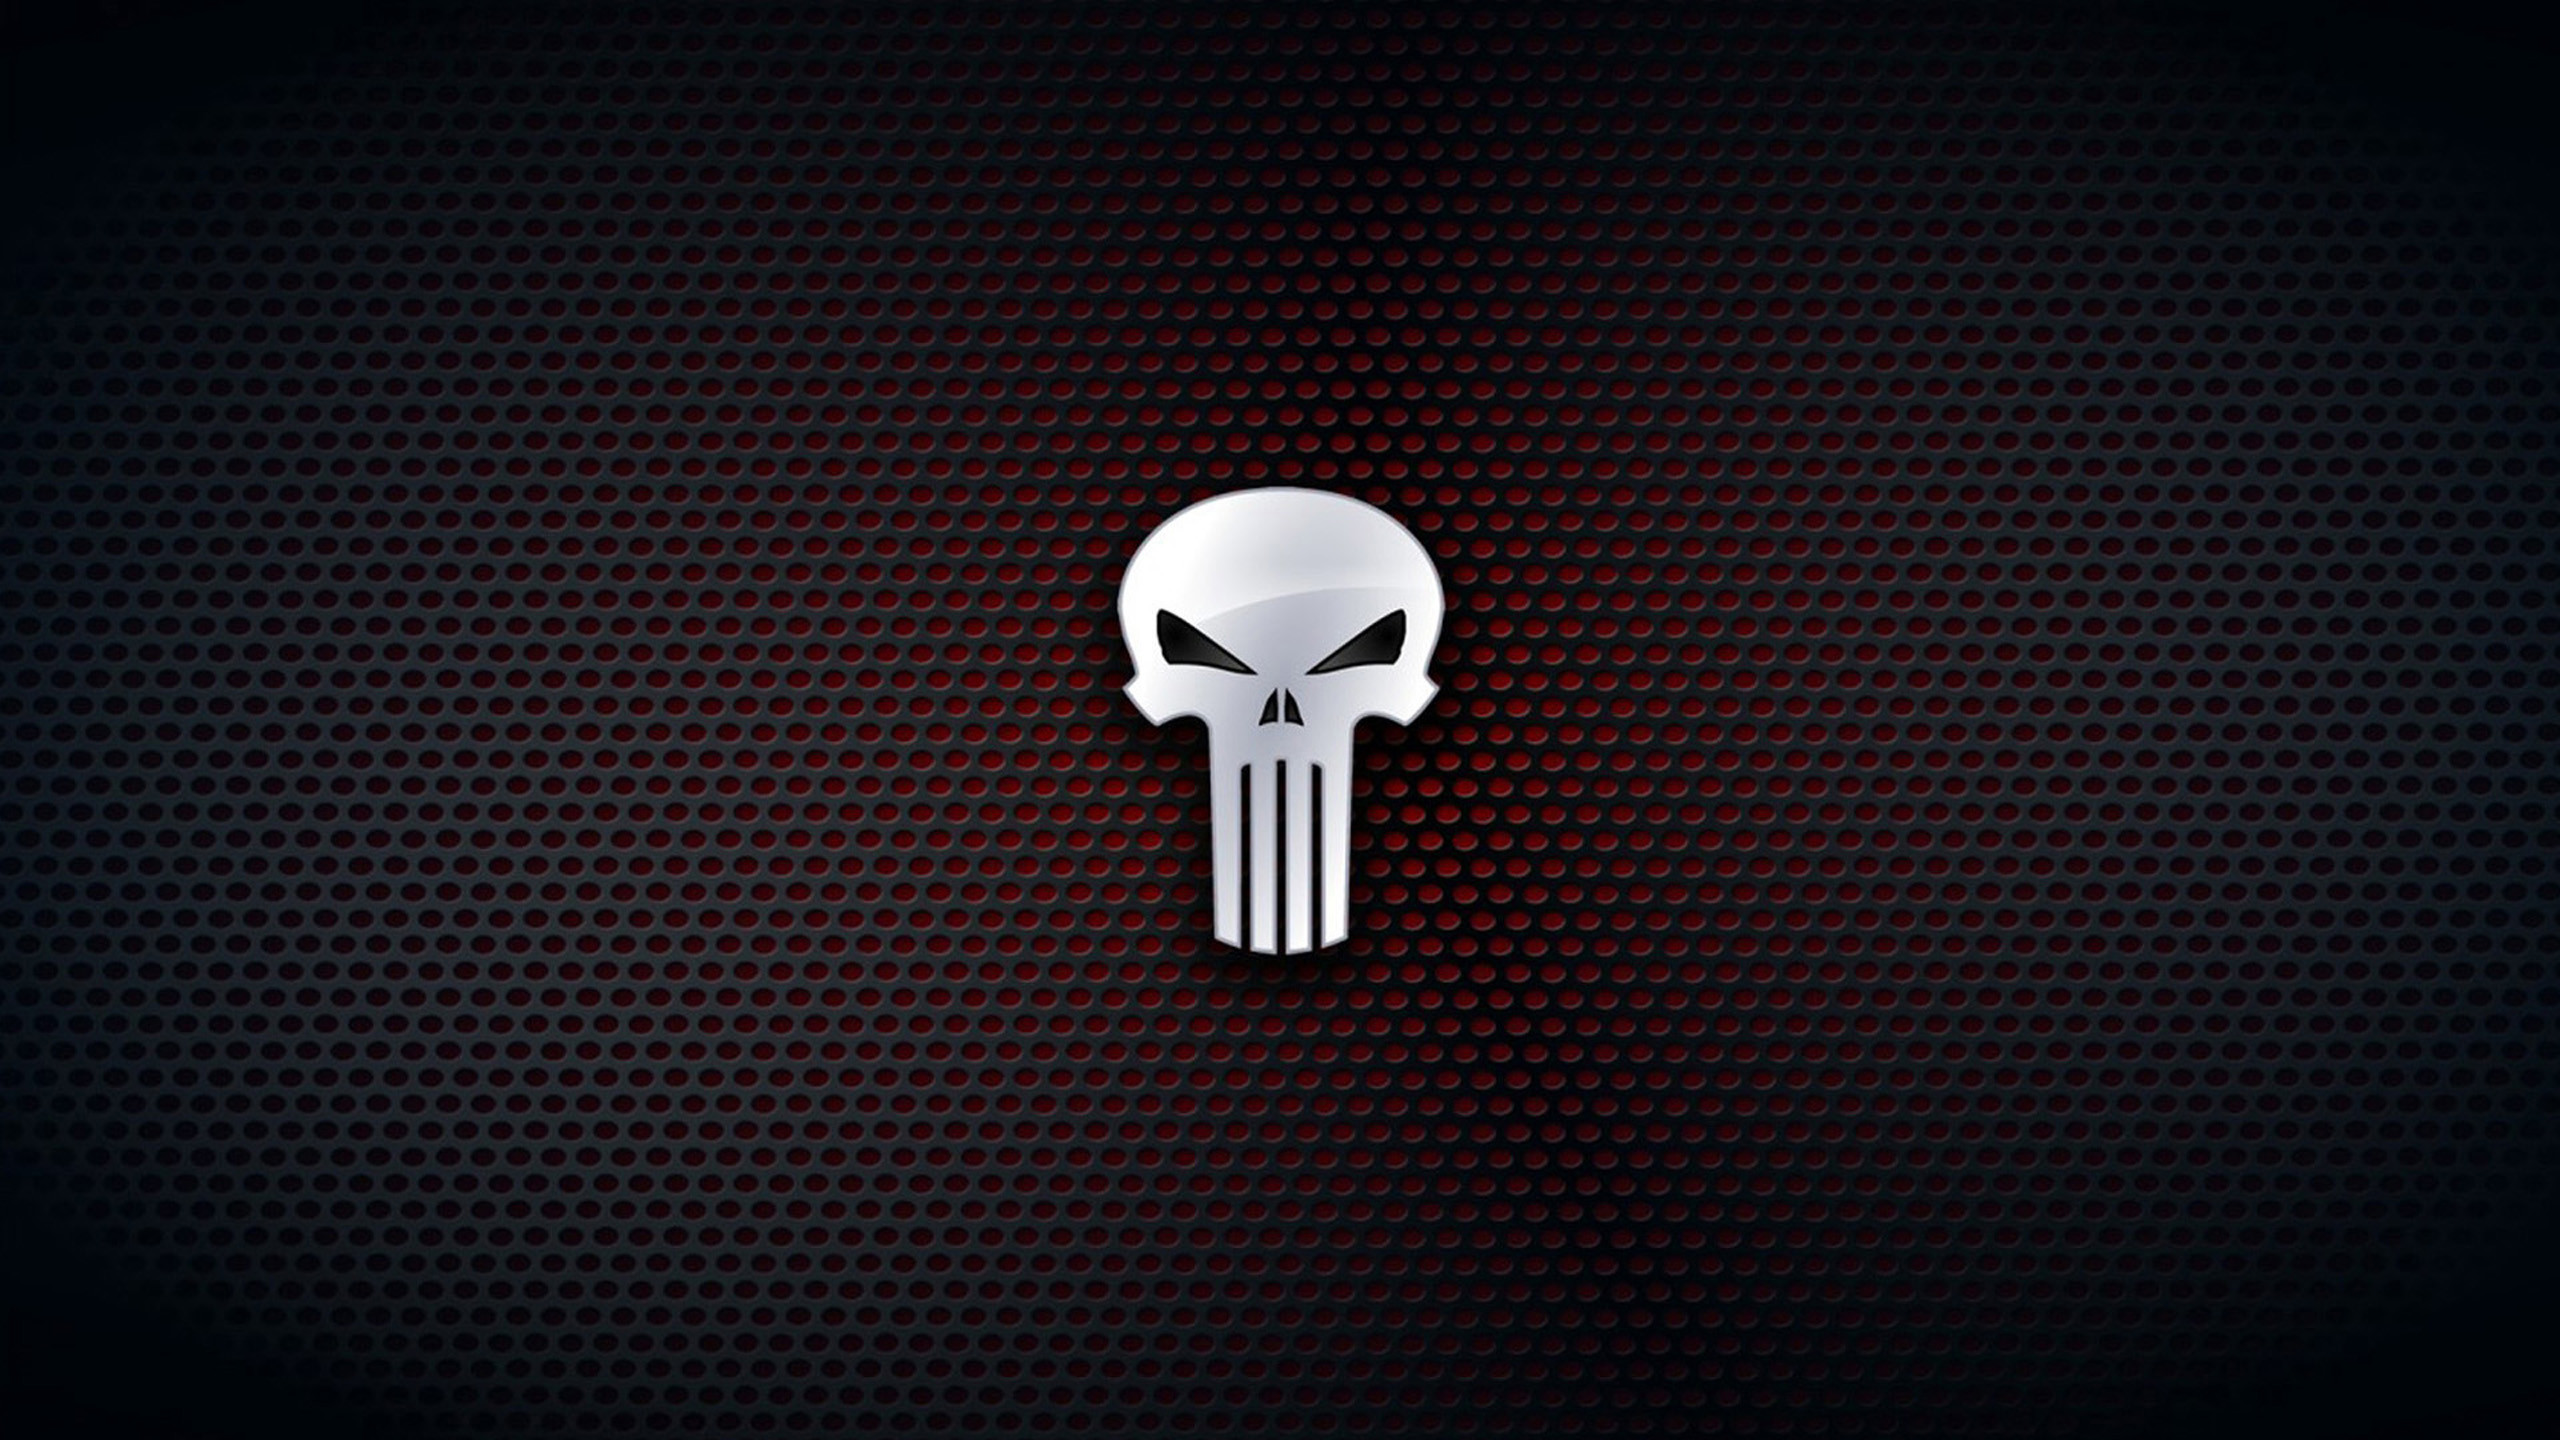 2560x1440 25 best ideas about <b>Punisher</b> on Pinterest | The